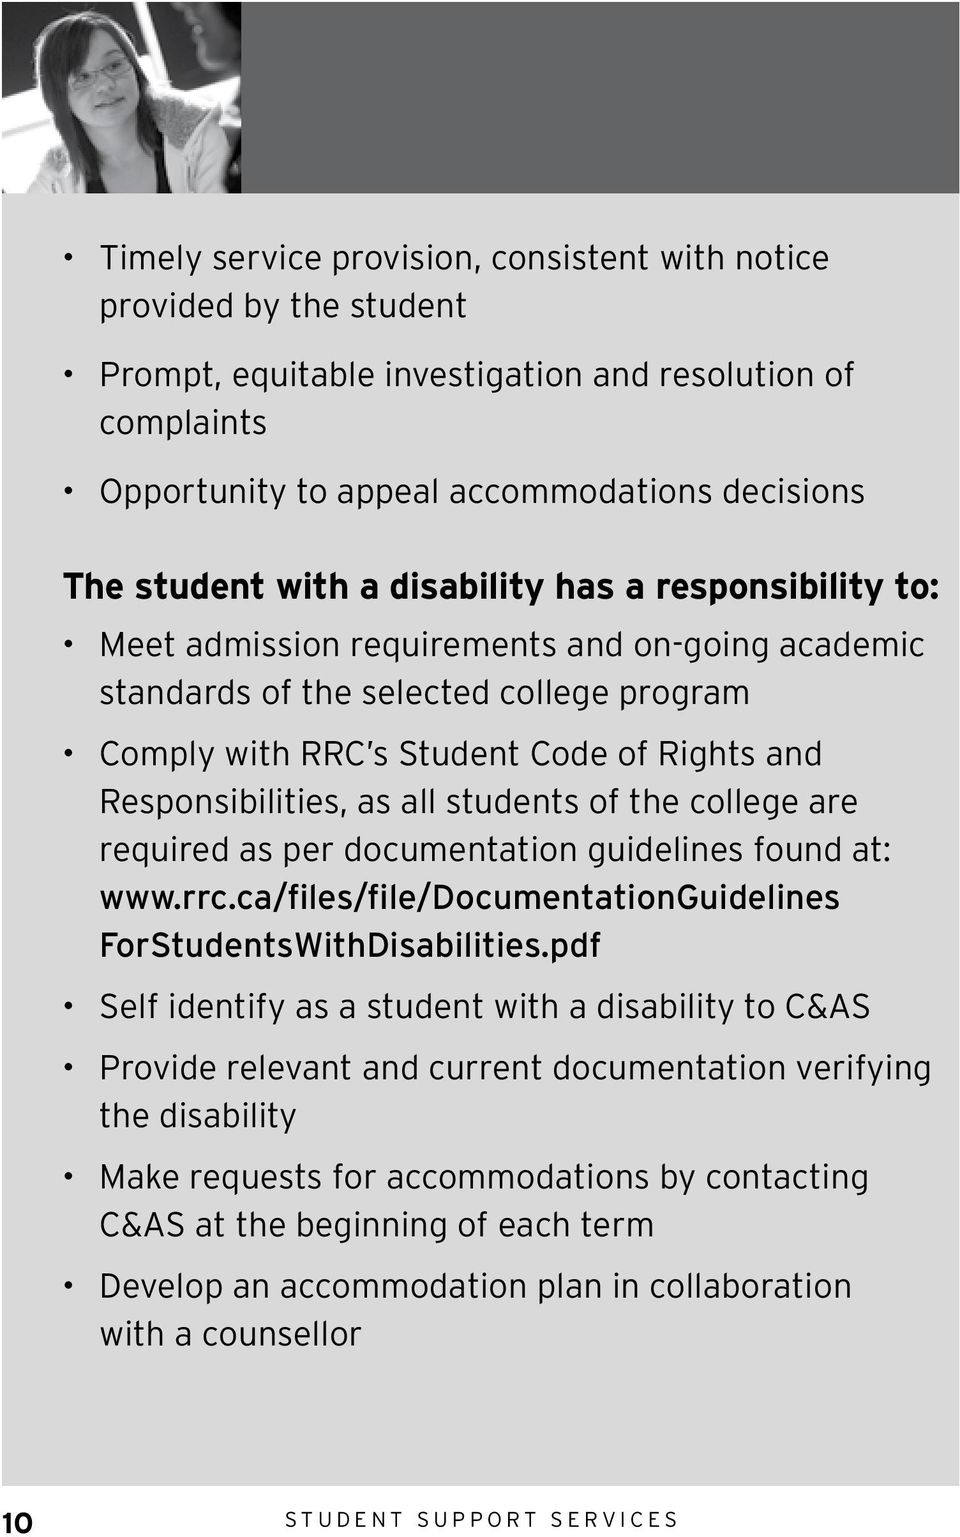 students of the college are required as per documentation guidelines found at: www.rrc.ca/files/file/documentationguidelines ForStudentsWithDisabilities.